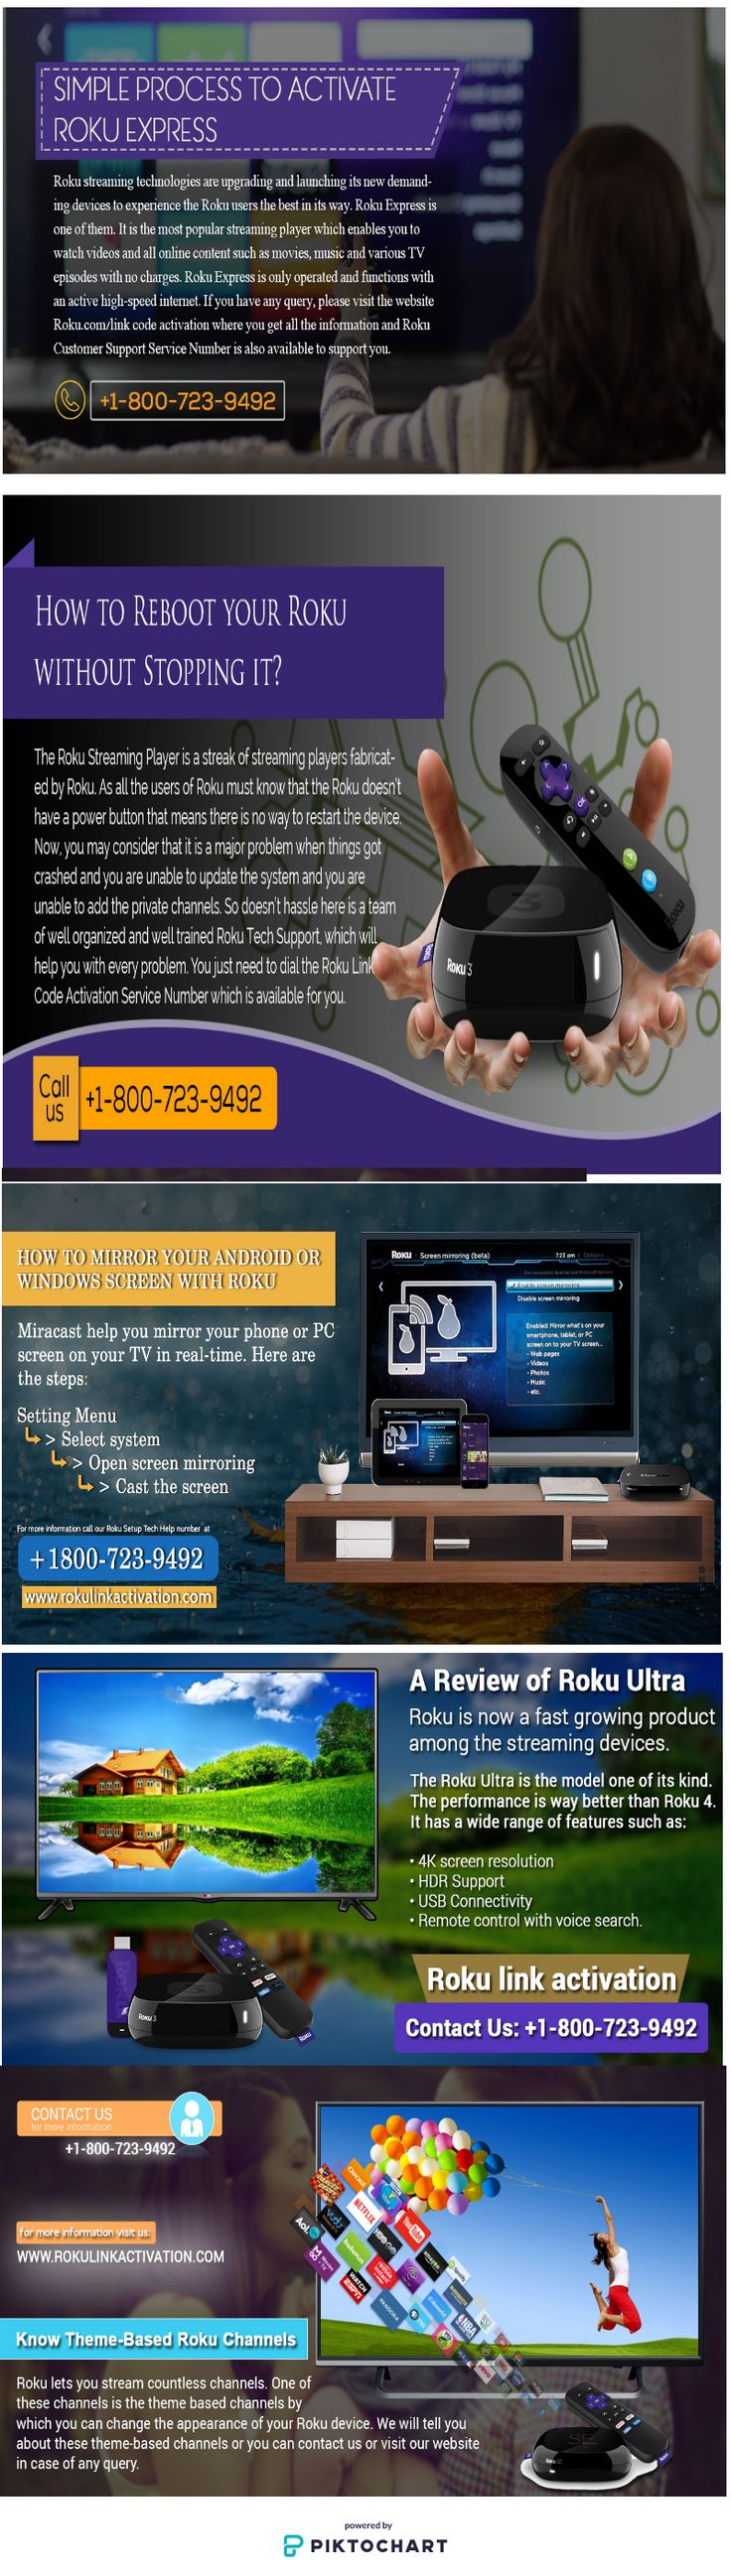 Smart Generation Roku is streaming device that takes content from internet and play it on your television. Roku played in smart and very enhanced technology that can help you to get the best television experience. Based upon the features and performance of Roku setup, No monthly payment required. You just have to do one thing that is Roku activation.